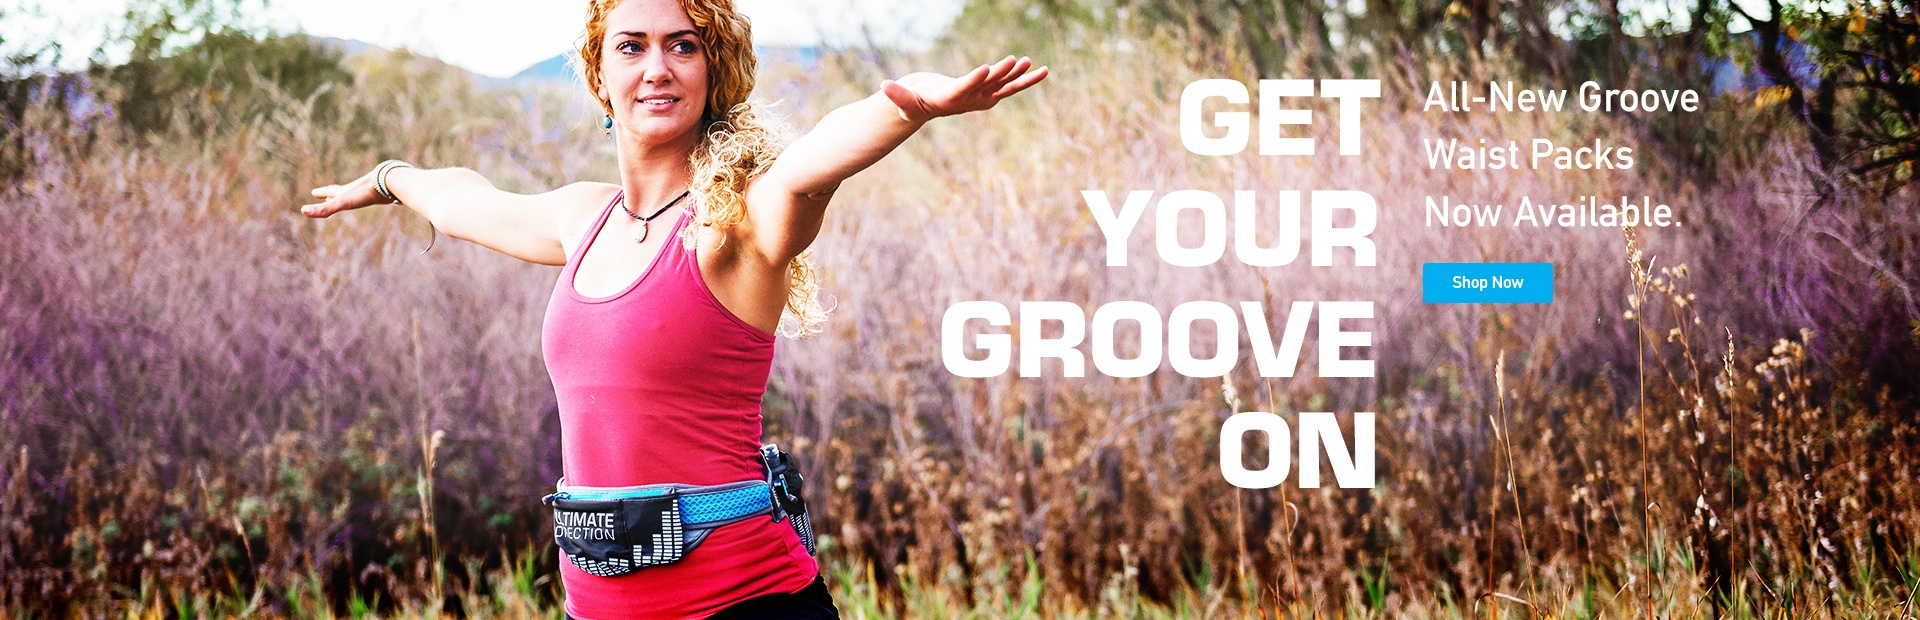 New Groove Waist Packs Now Available